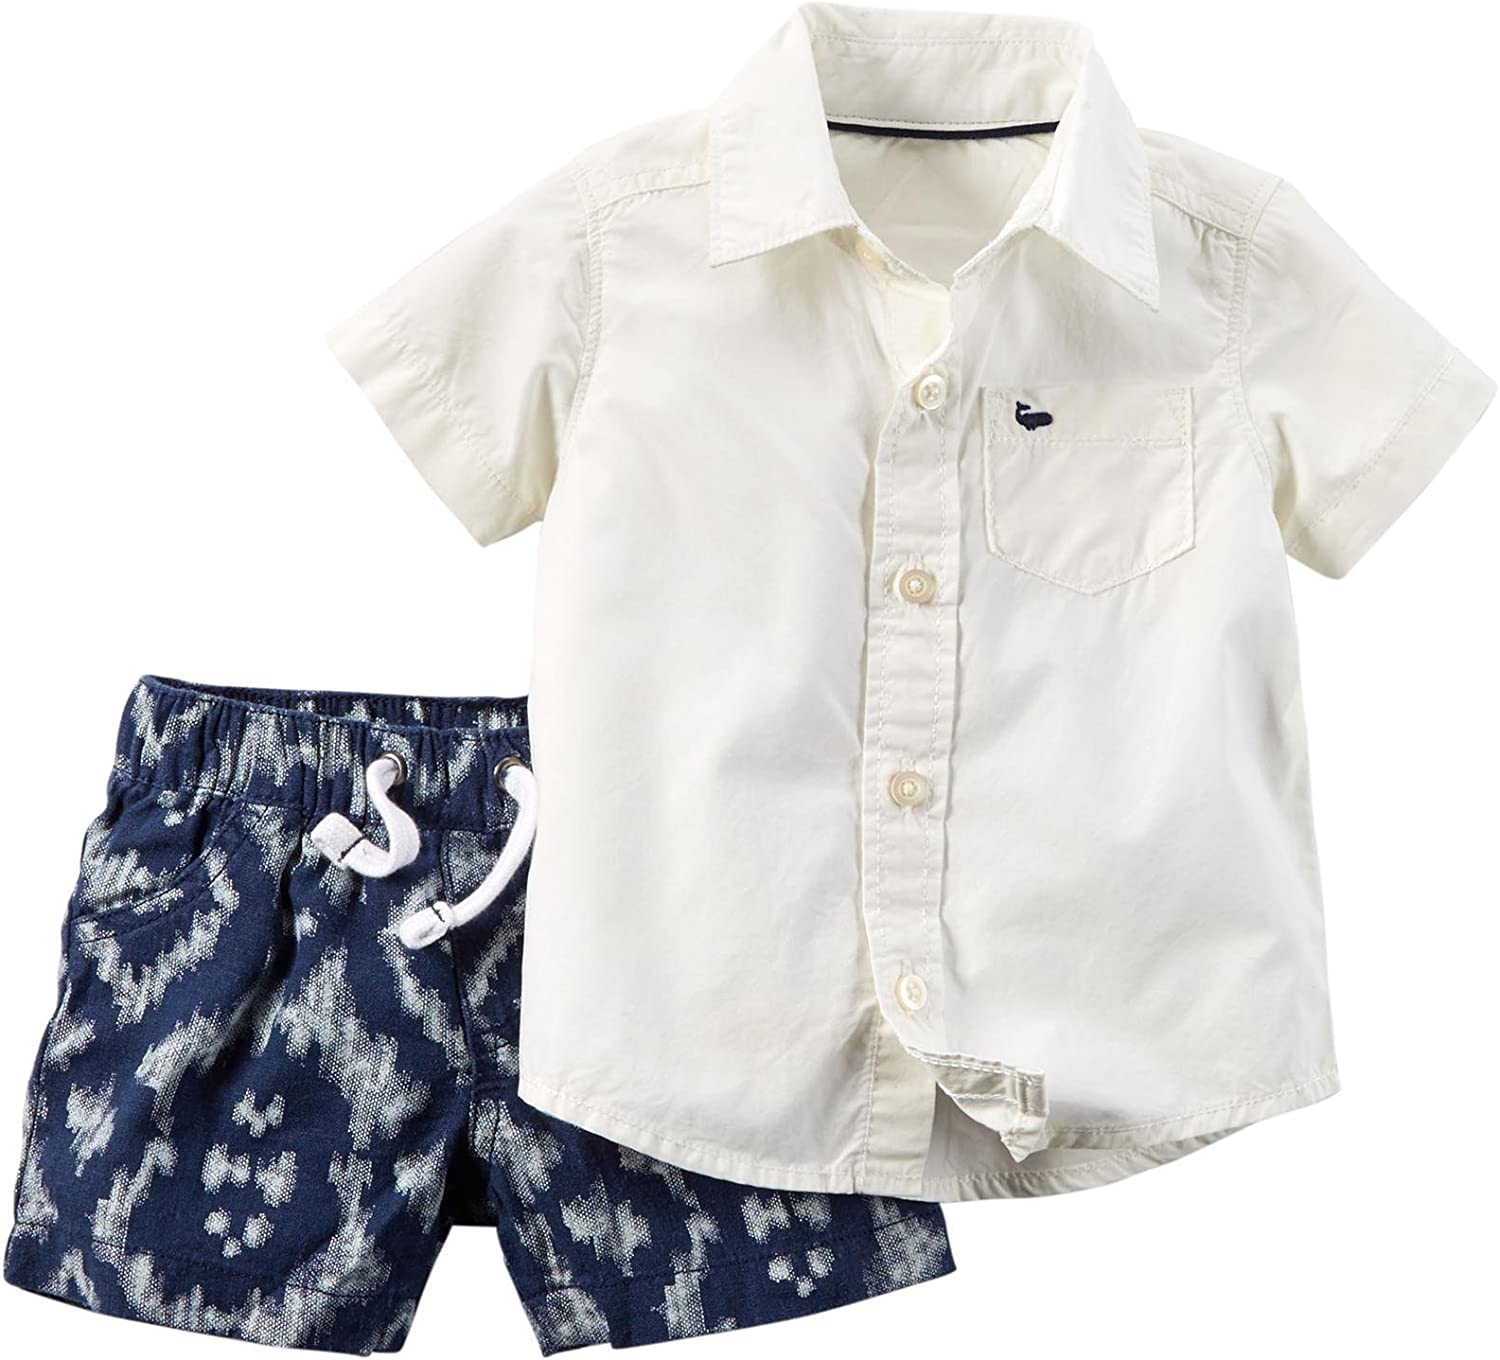 Baby Carters 2 Piece Sets